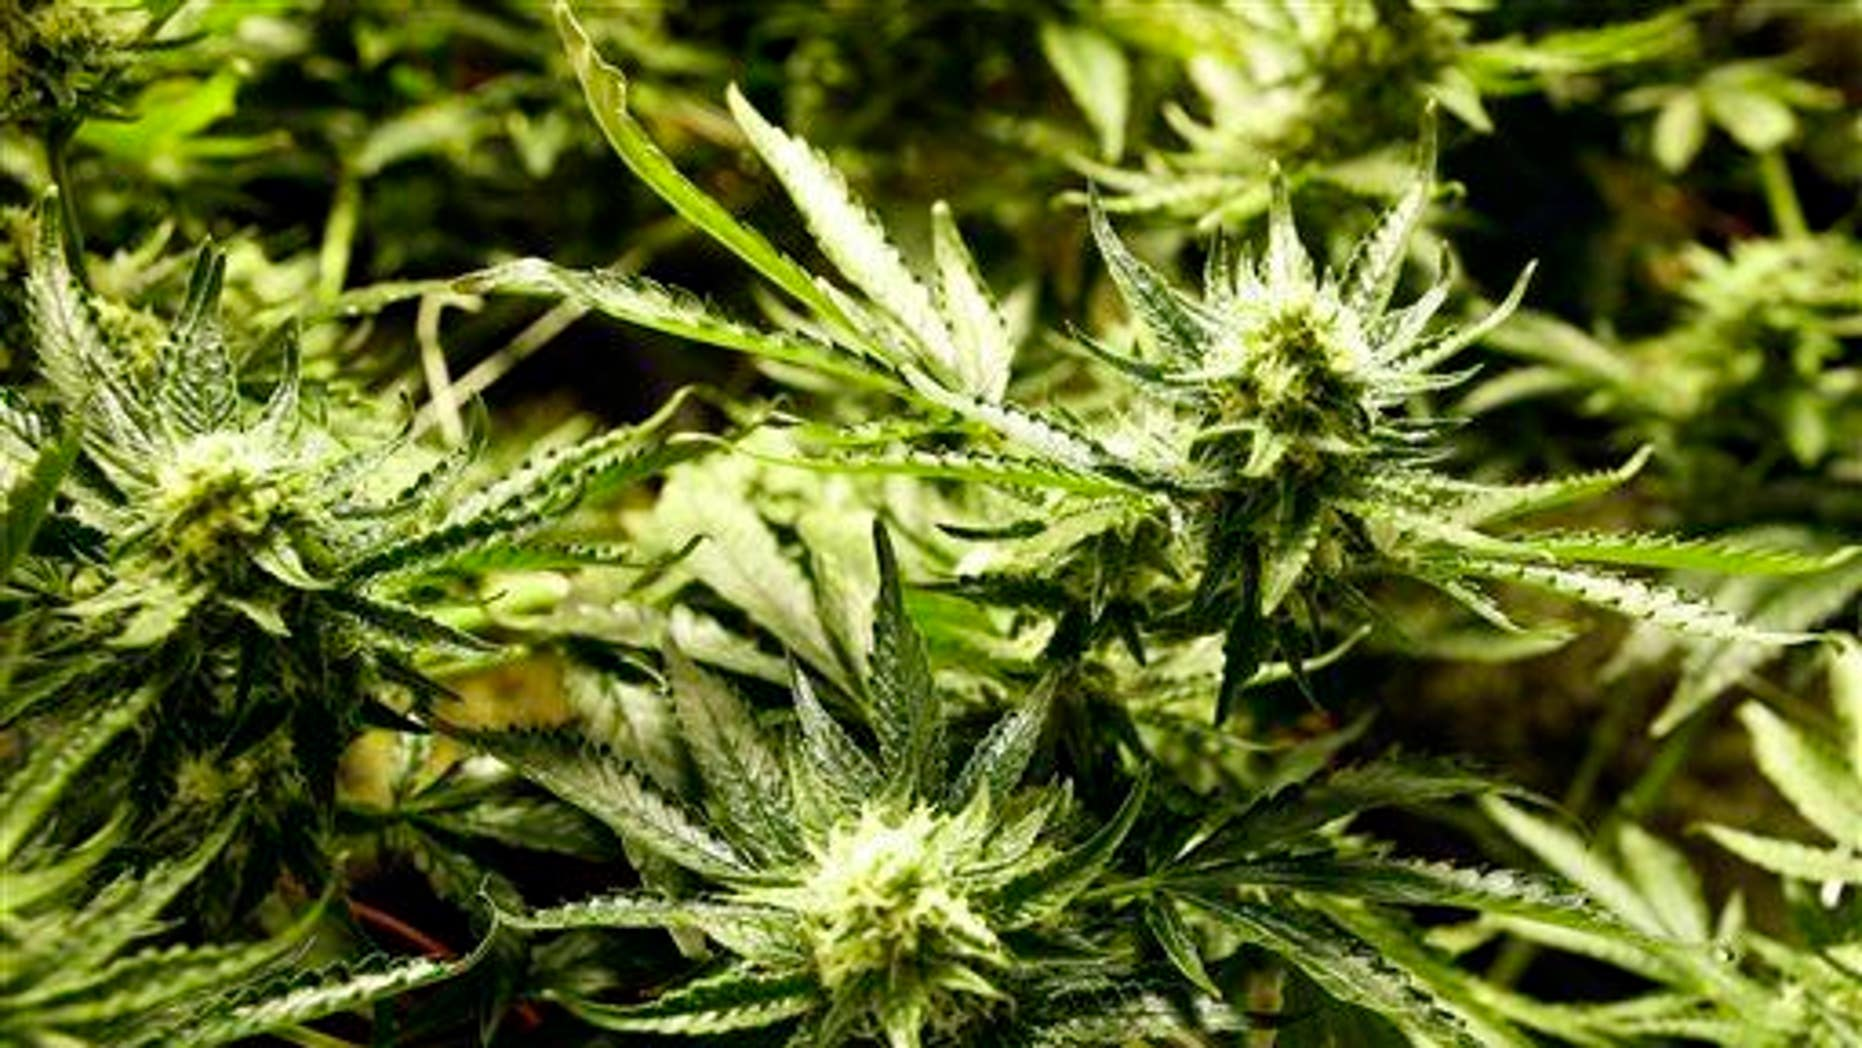 A marijuana plant. Researchers say those who indulge might get paranoid.